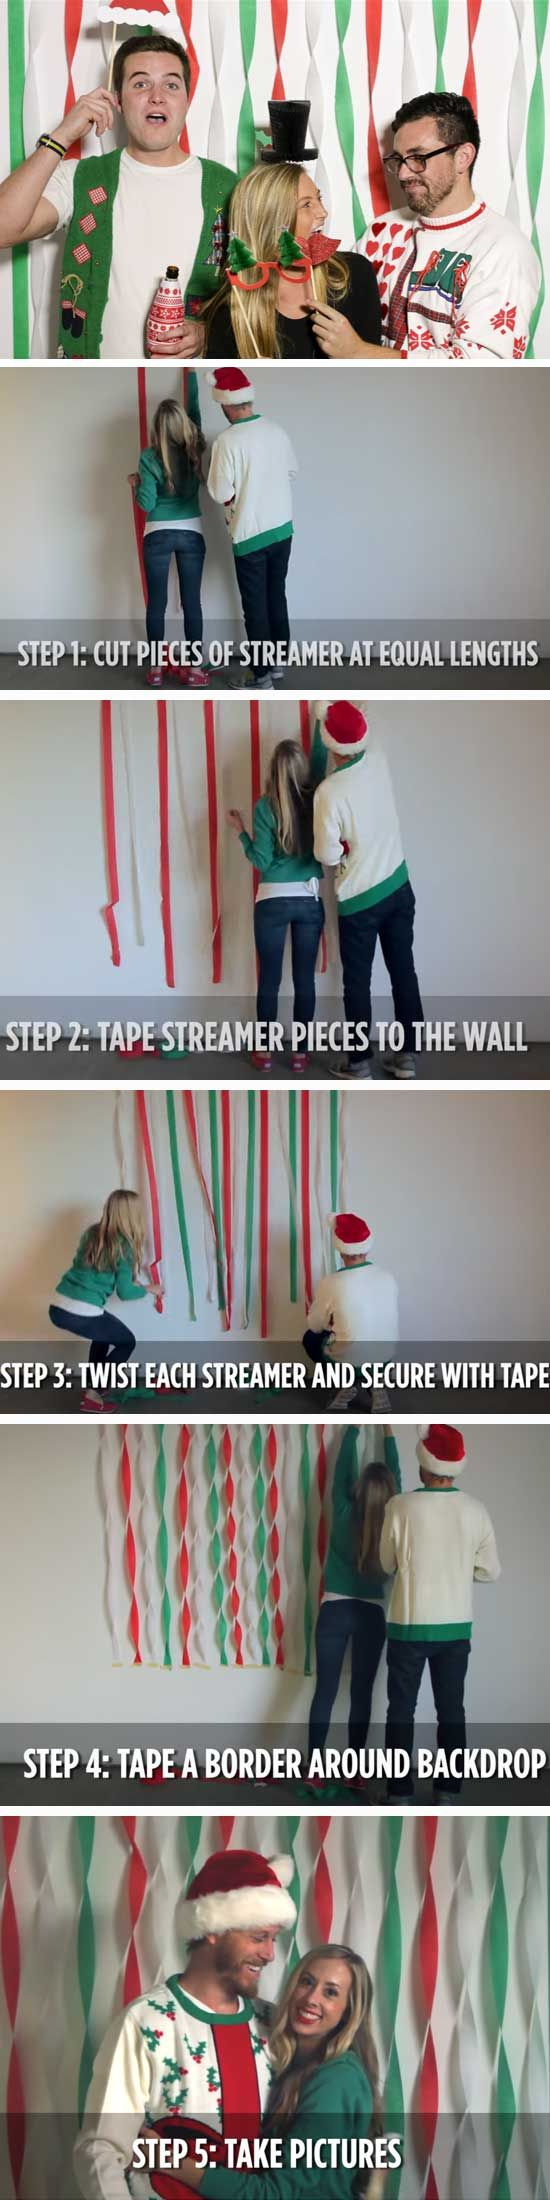 Fun Adult Christmas Party Ideas Part - 22: Festive Photobooth | 20 DIY Christmas Party Ideas For Adults | Beauty Hacks  | Pinterest | DIY Christmas And Holidays